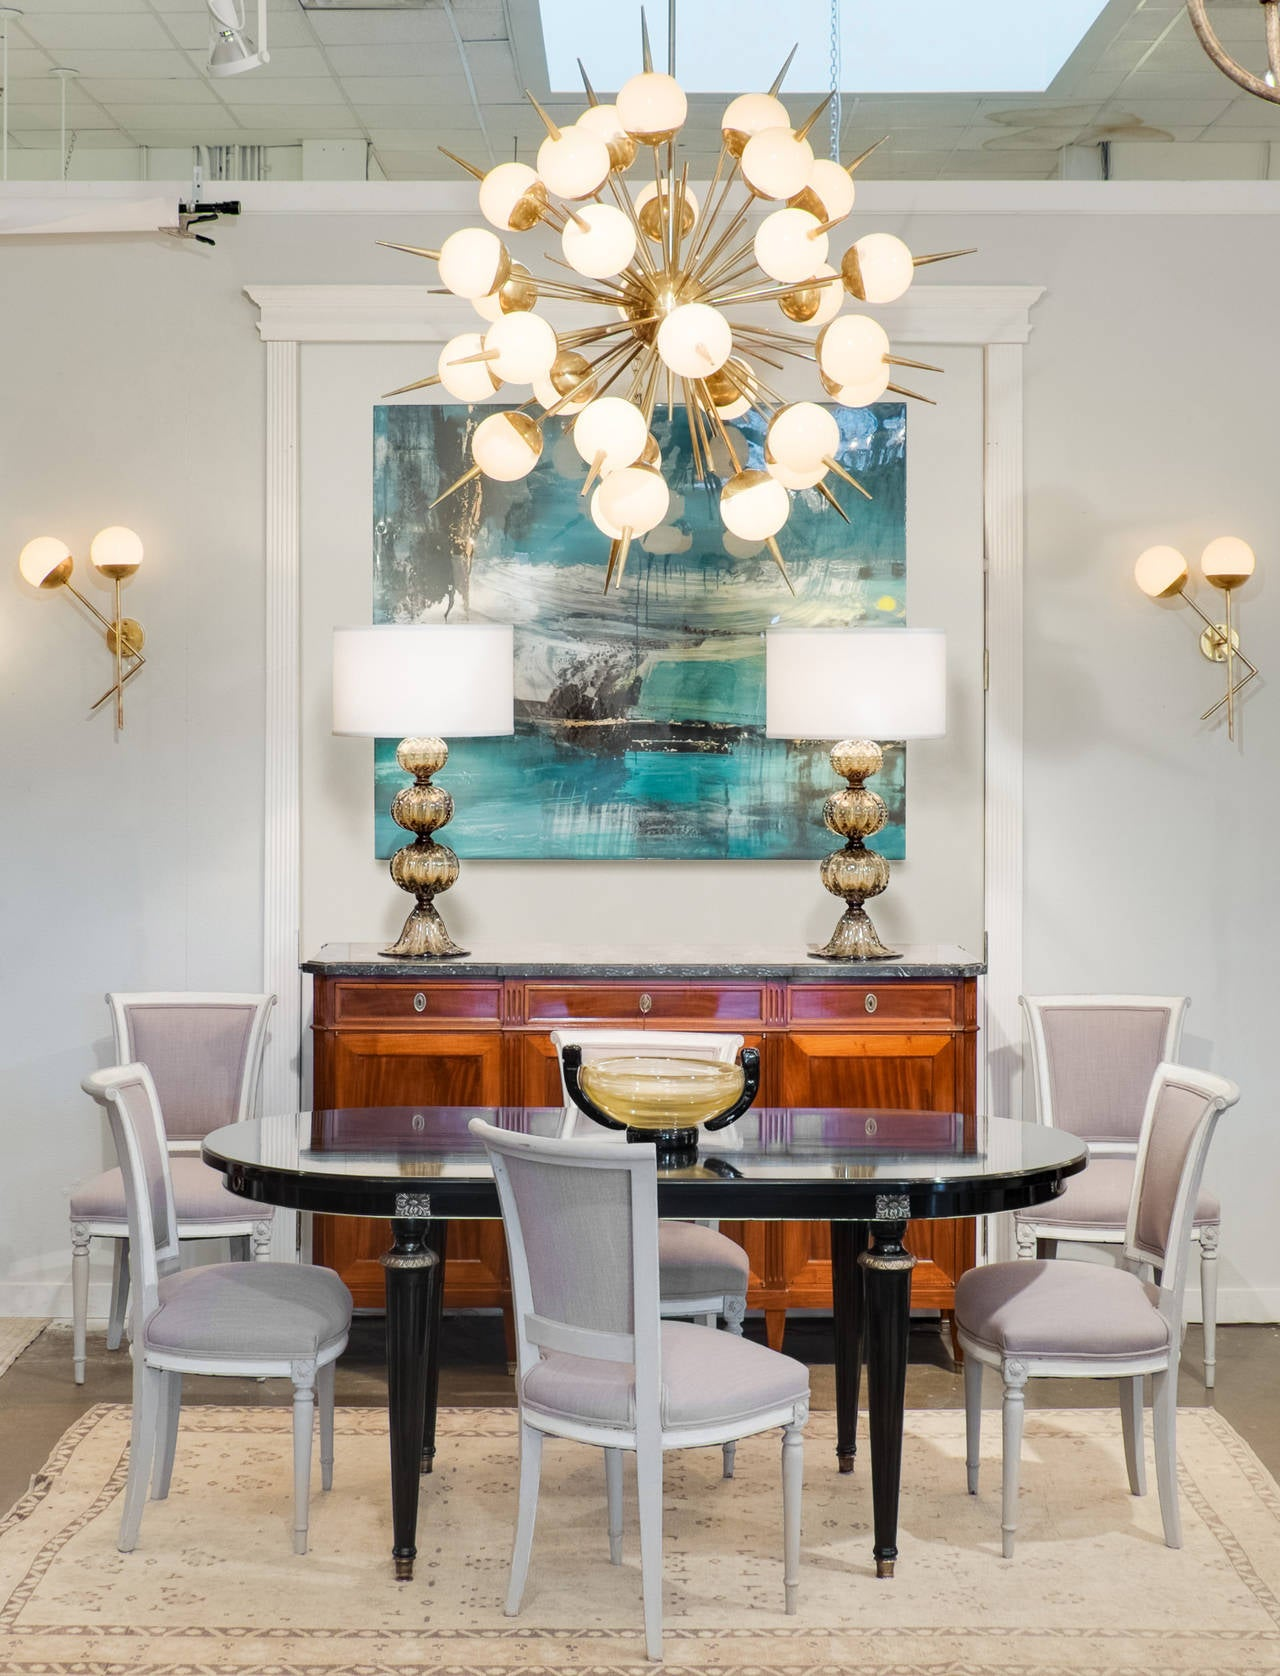 murano due lighting living room dinning. Amazing Sputnik Chandelier With 30 Branches Mounted Murano Blown Glass Spheres And Their Pointed Finials Due Lighting Living Room Dinning C